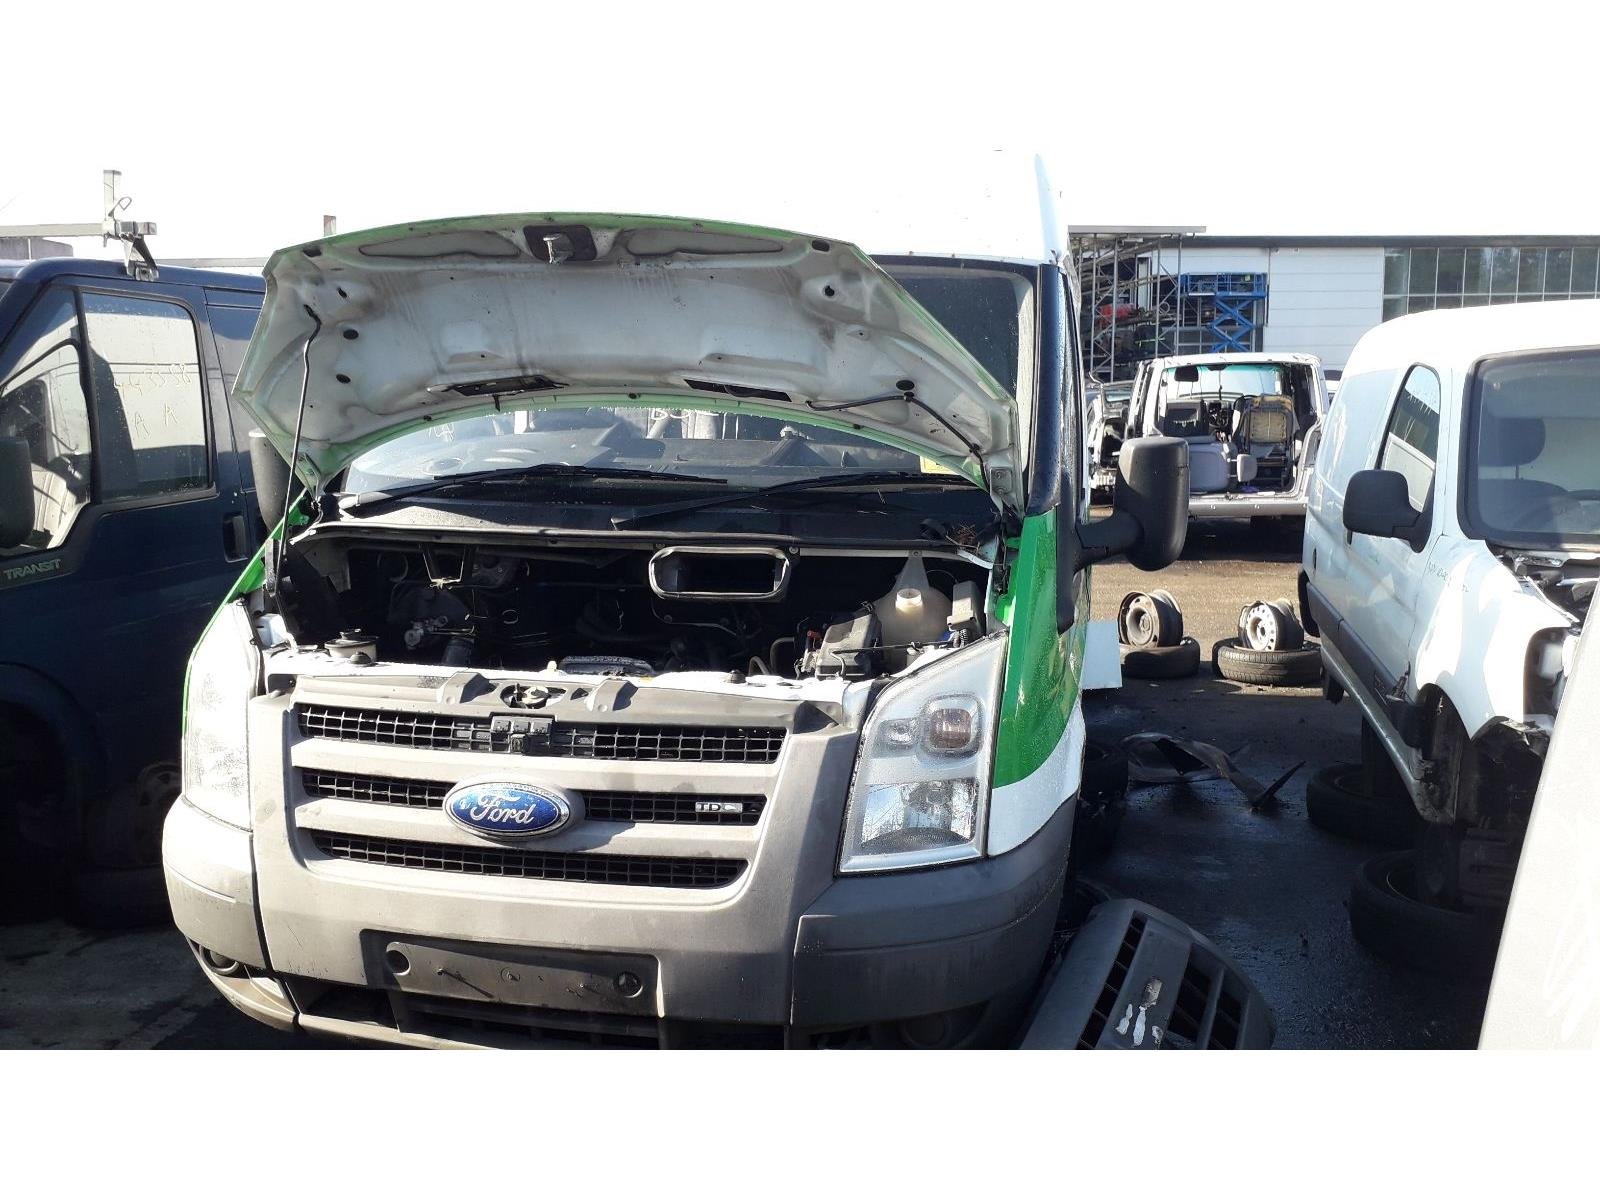 Ford Transit 2006 To 2014 280 SWB Medium Roof L C V